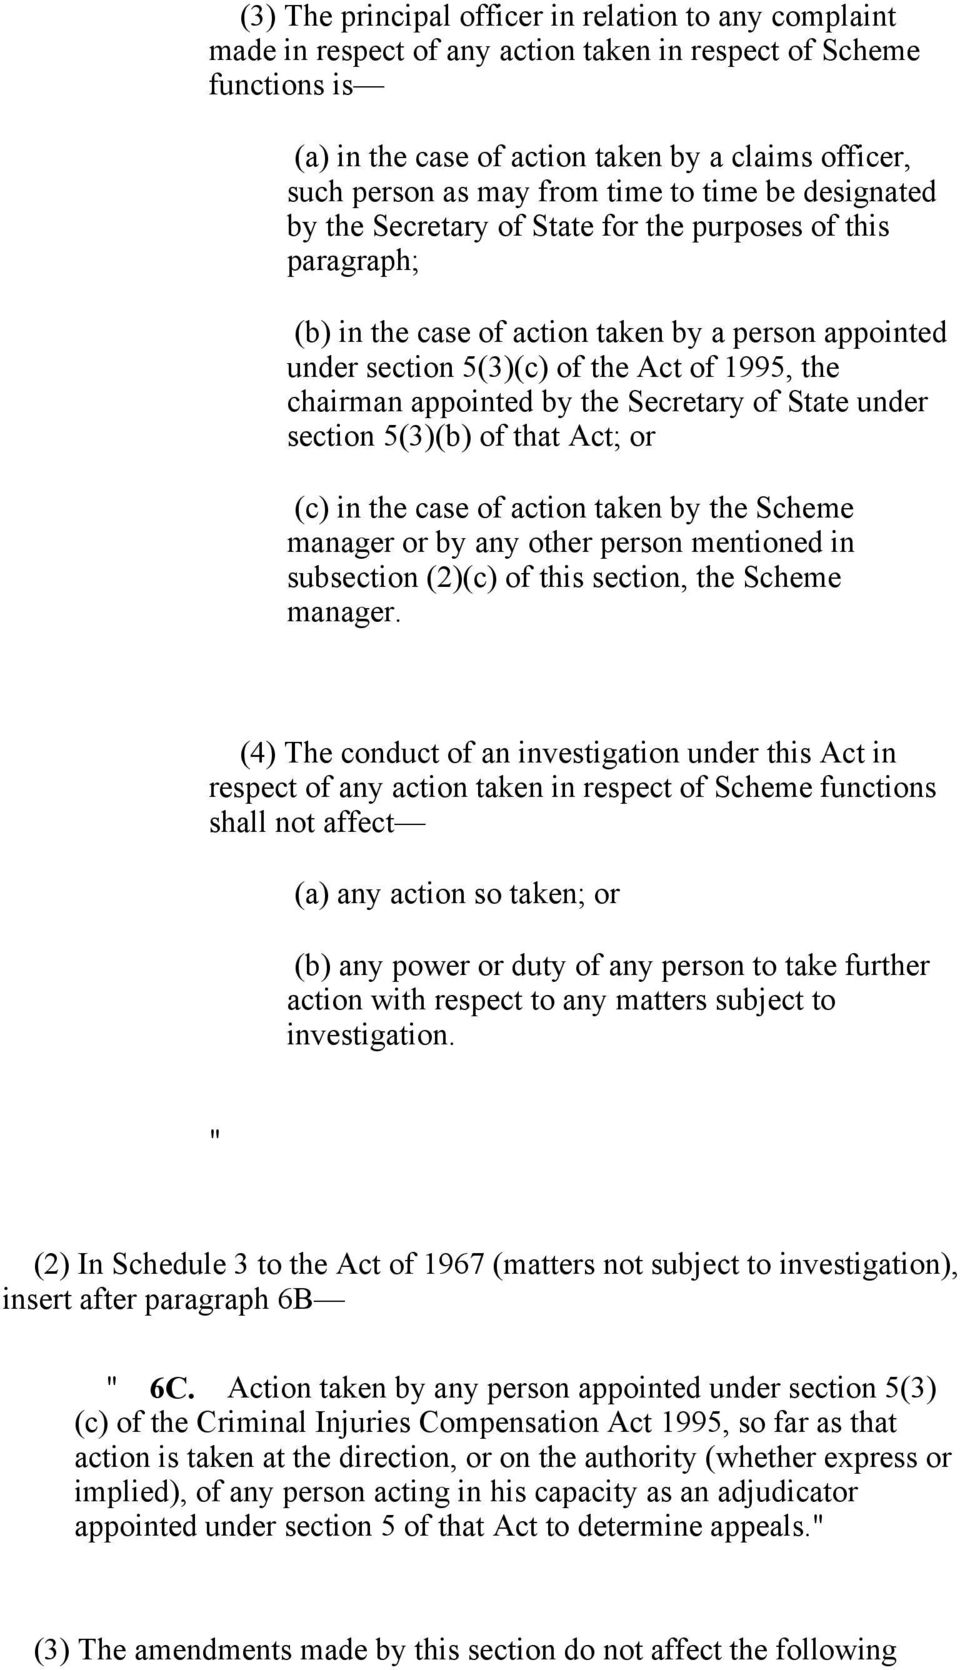 chairman appointed by the Secretary of State under section 5(3)(b) of that Act; or (c) in the case of action taken by the Scheme manager or by any other person mentioned in subsection (2)(c) of this